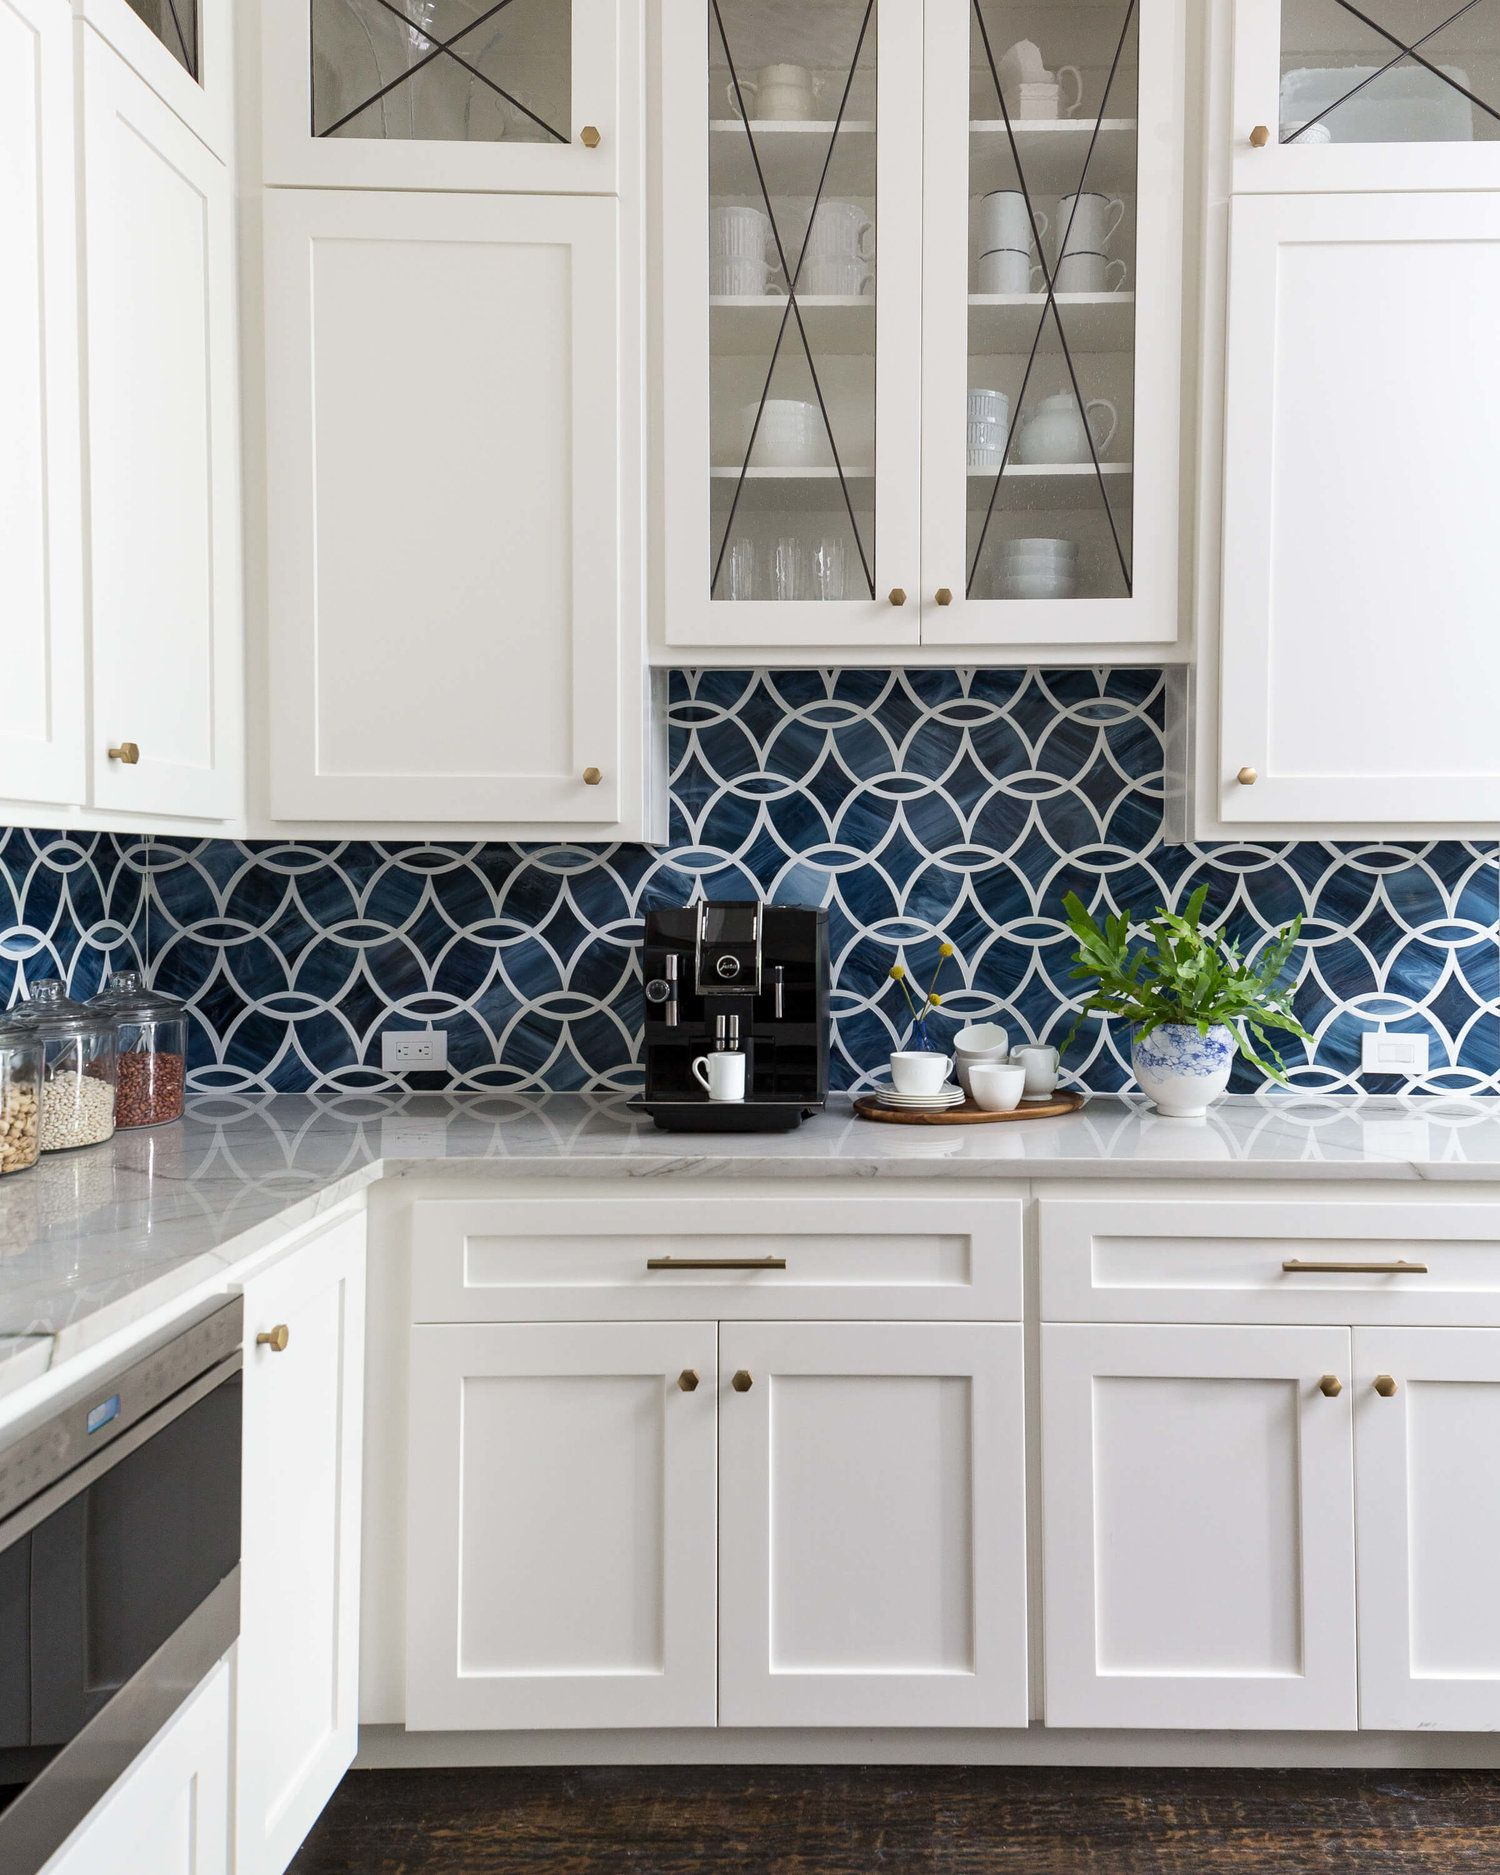 Before And After A Dramatic Kitchen And Family Room Makeover You Really Must See White Kitchen Design Kitchen Makeover Blue Backsplash Kitchen